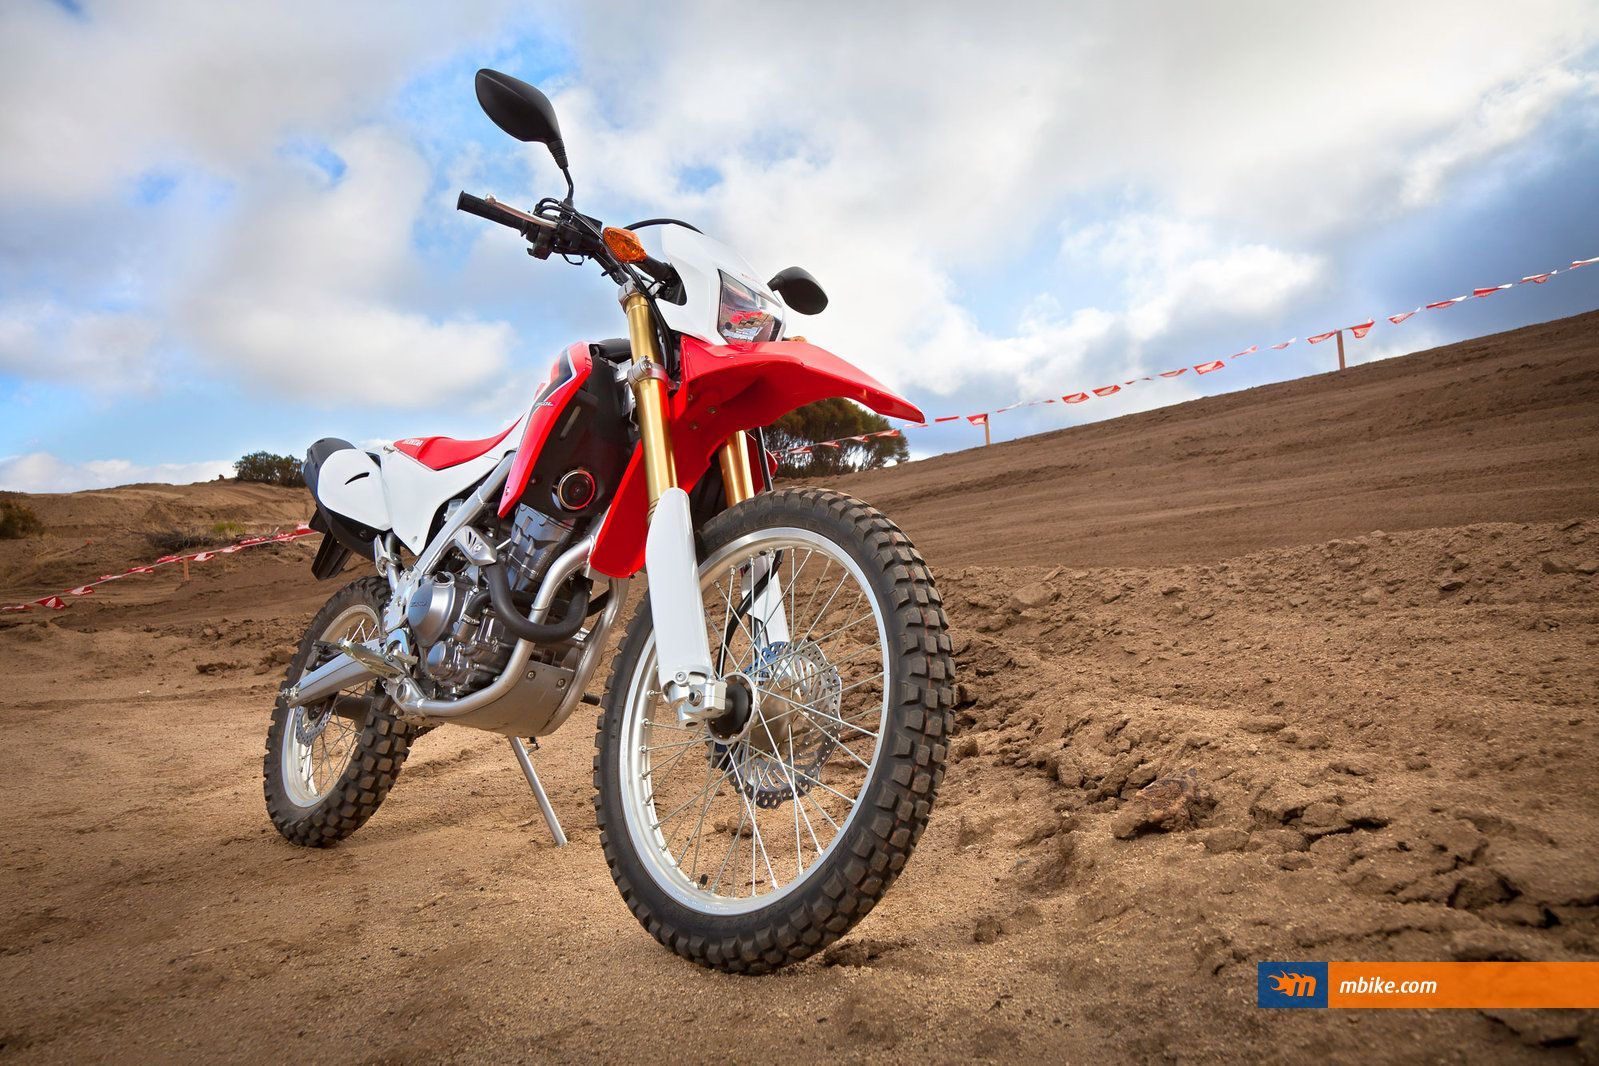 Honda Crf250r Wallpapers High Quality Resolution Download